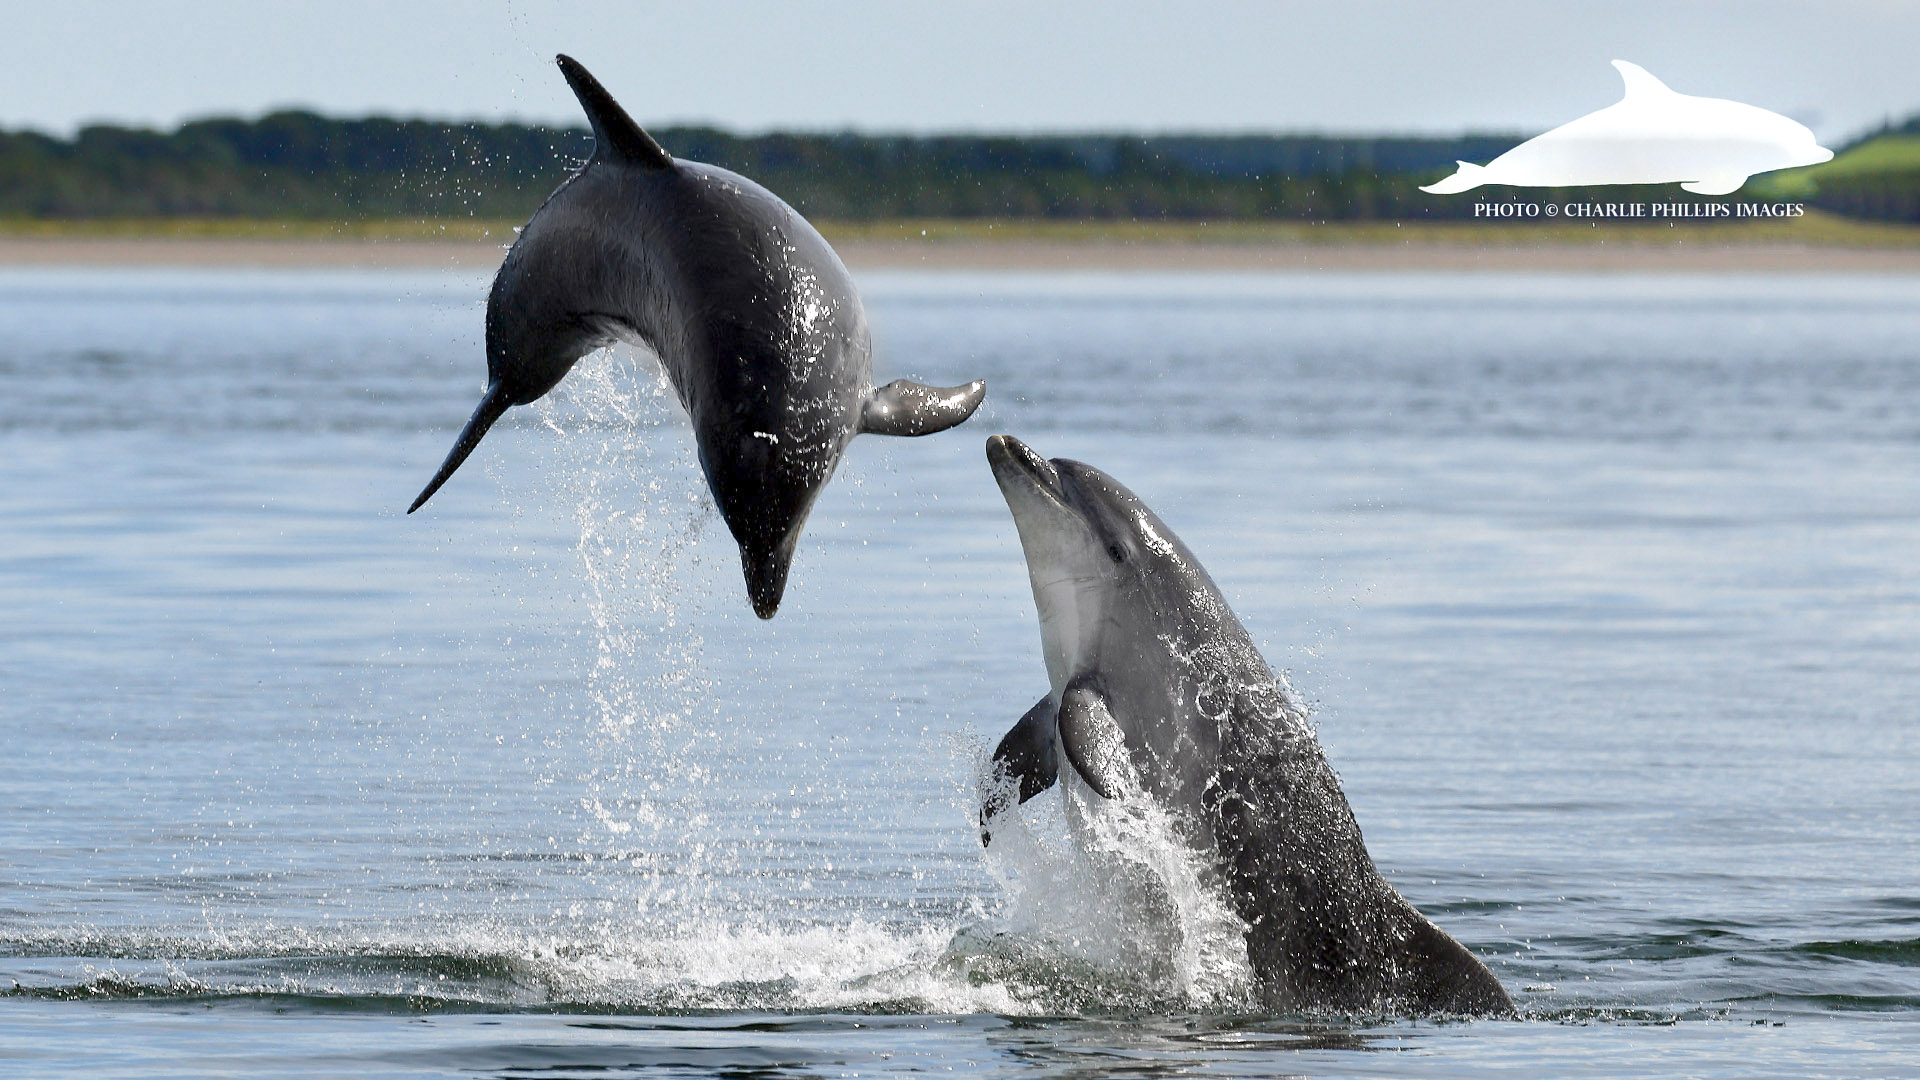 CHARLIE AND LUNAR, RESPECTIVE SONS OF KESSLET AND MOONLIGHT, TWO OF THE WDC'S  ADOPTION DOLPHINS .COPYRIGHT CHARLIE PHILLIPS